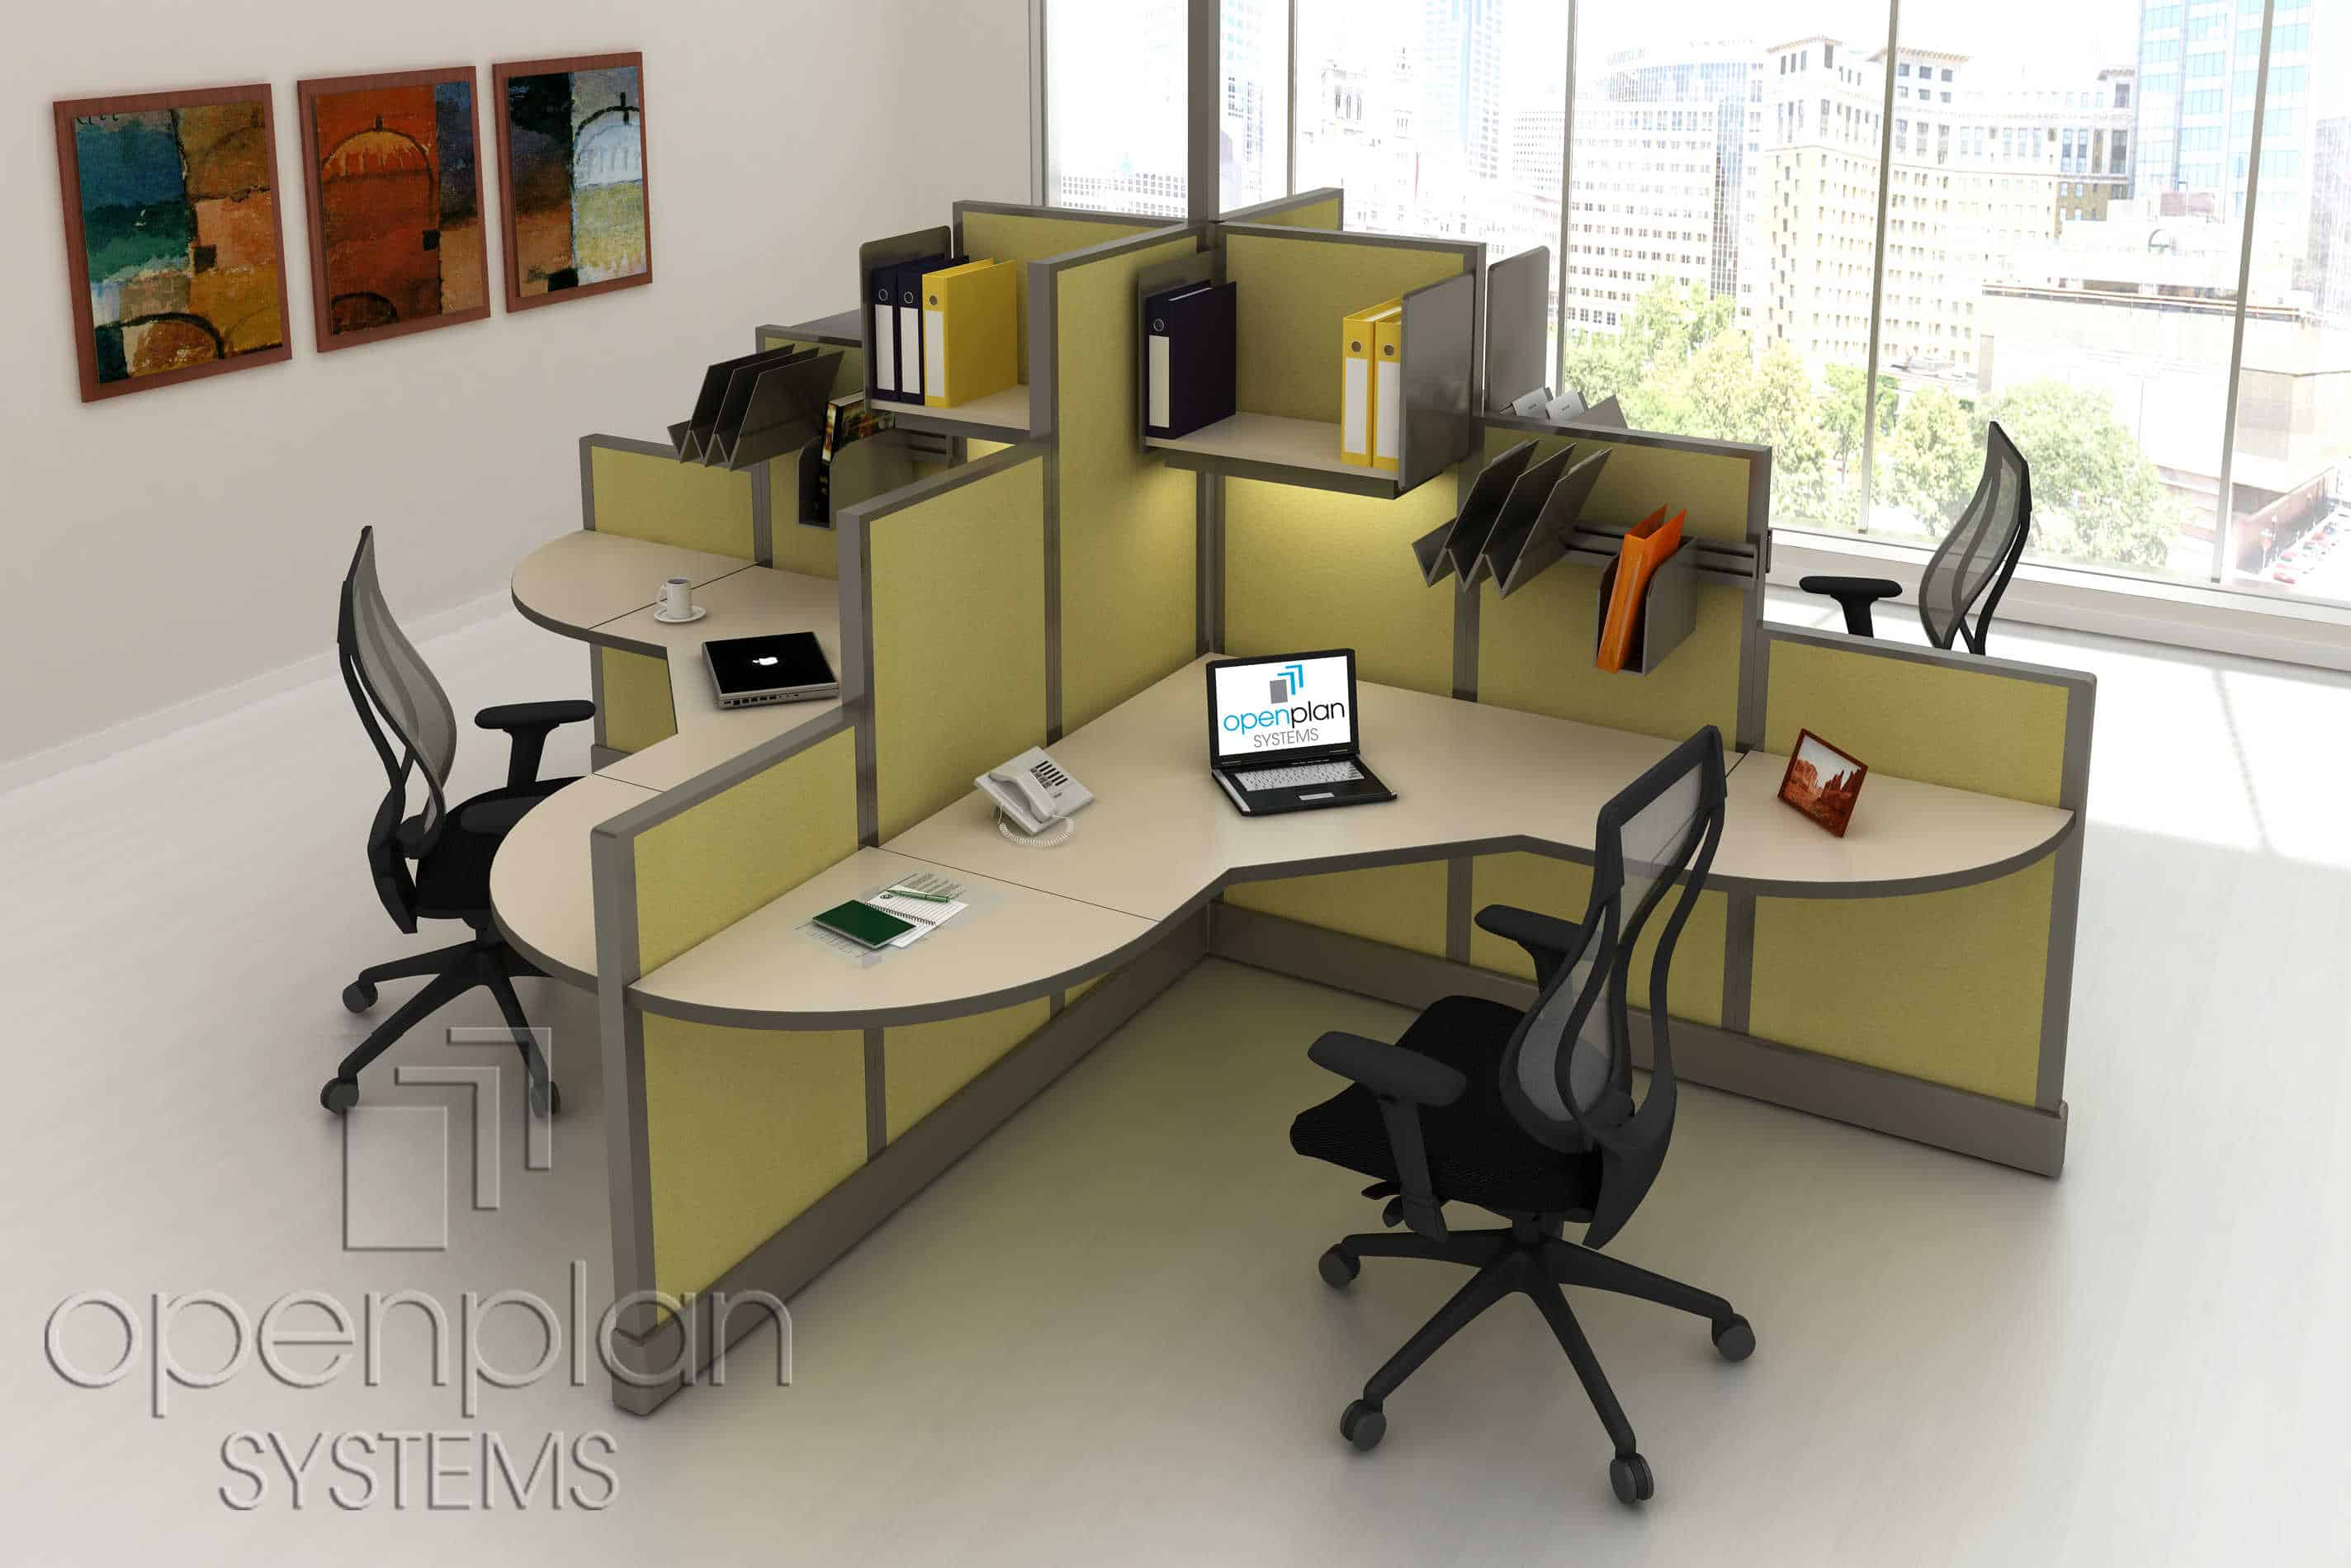 Workstation Furniture Modern Clover Shaped Office Workstation For 4 People